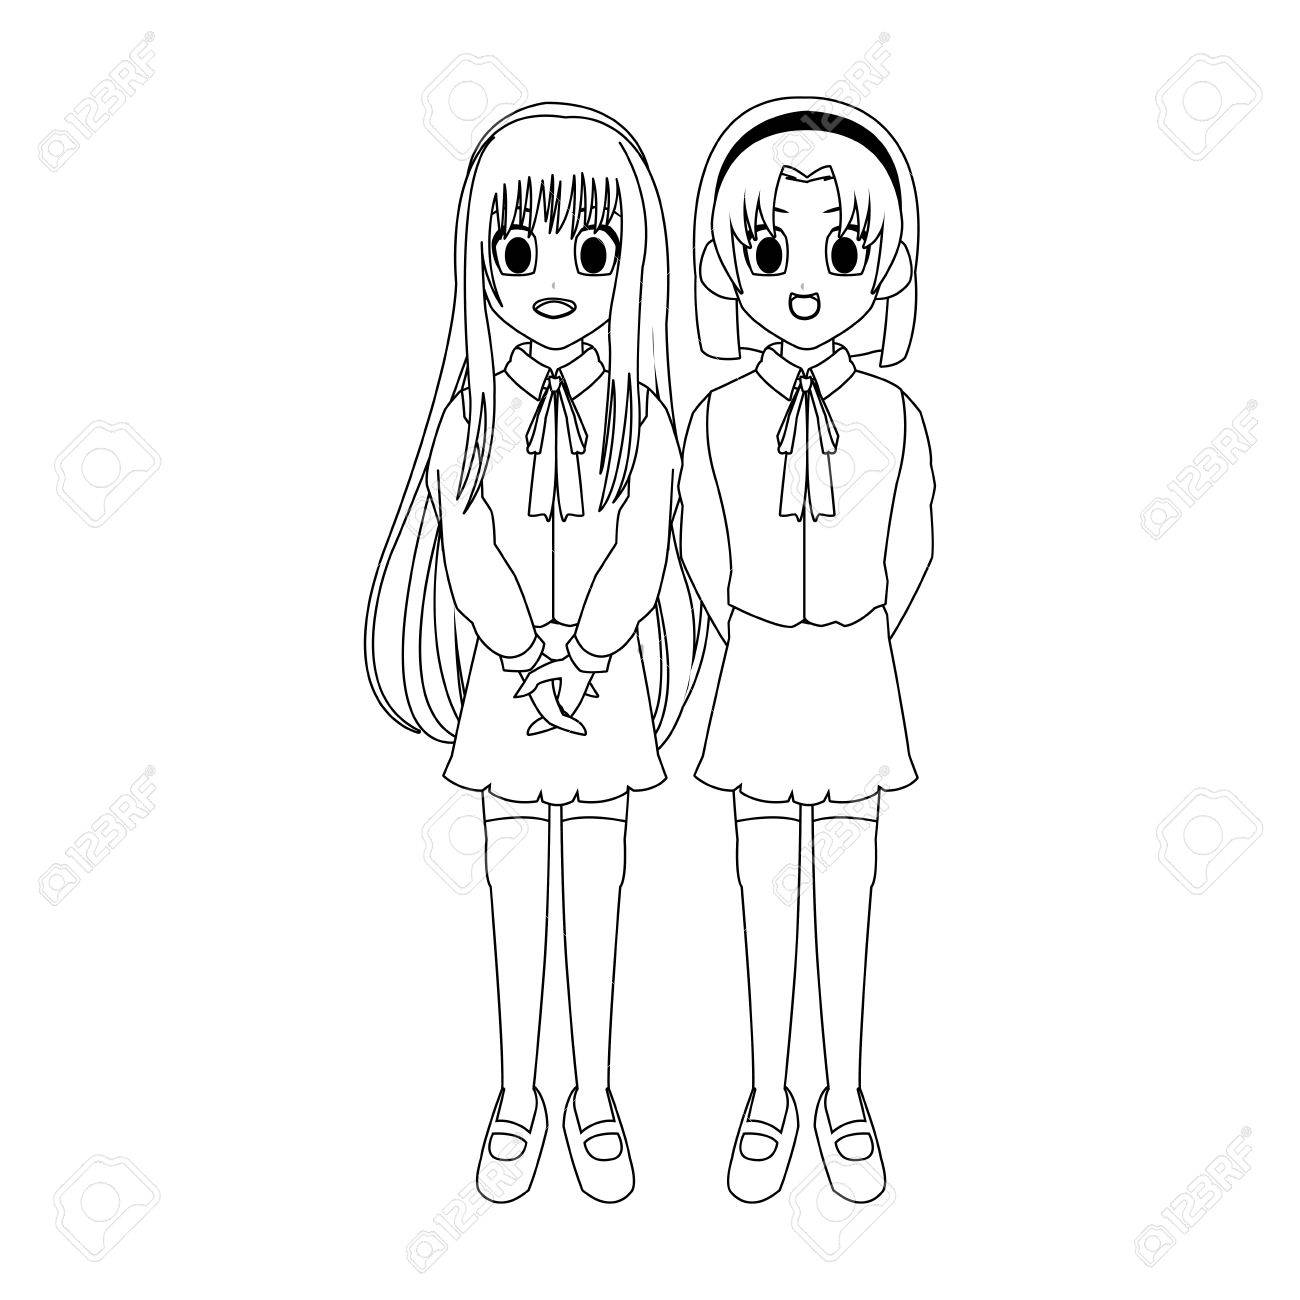 Anime Girls Wearing School Uniforms Icon Over White Background